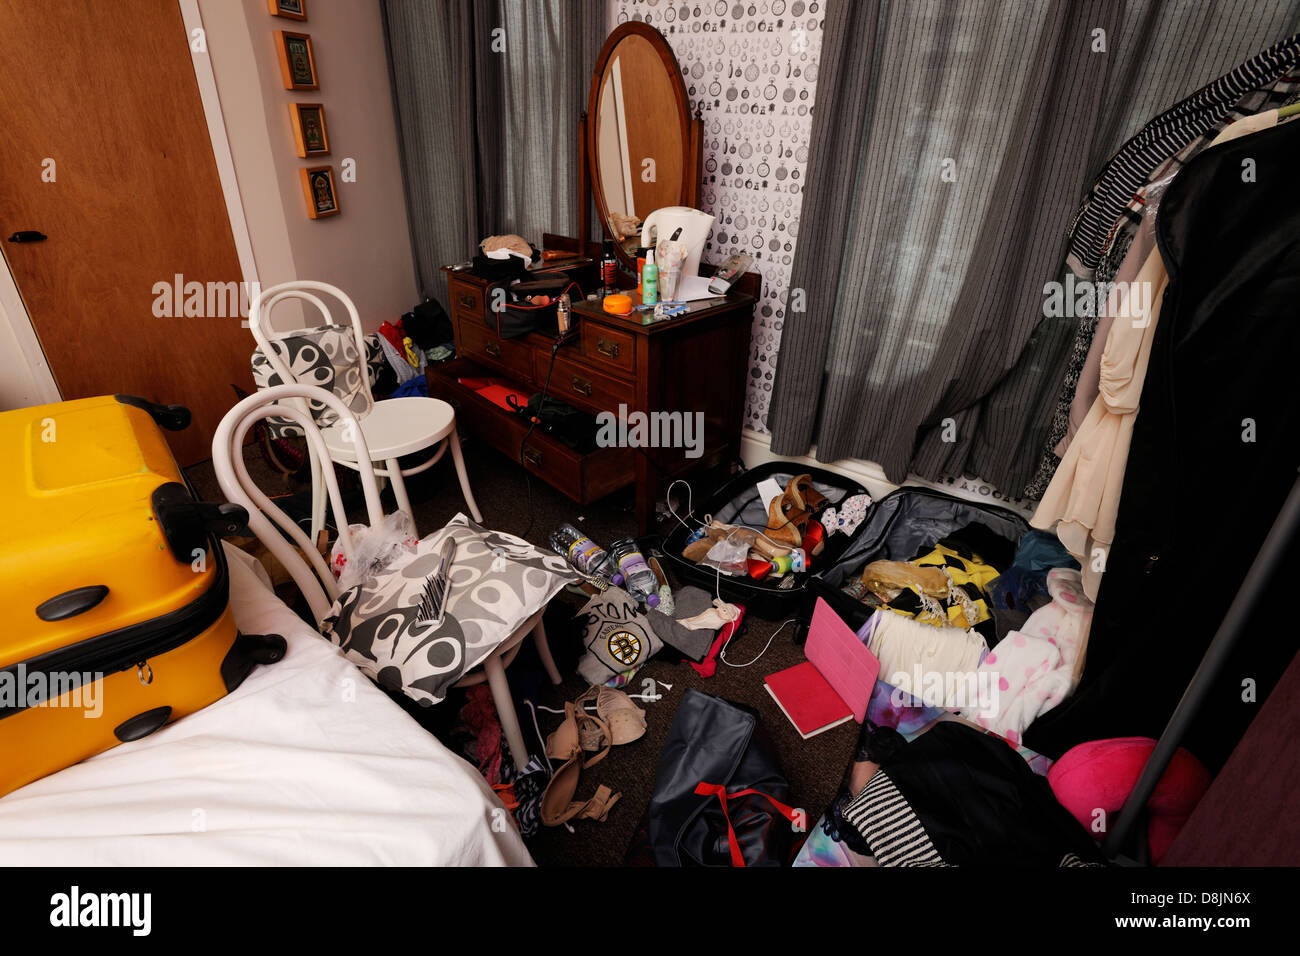 messy room - Stock Image